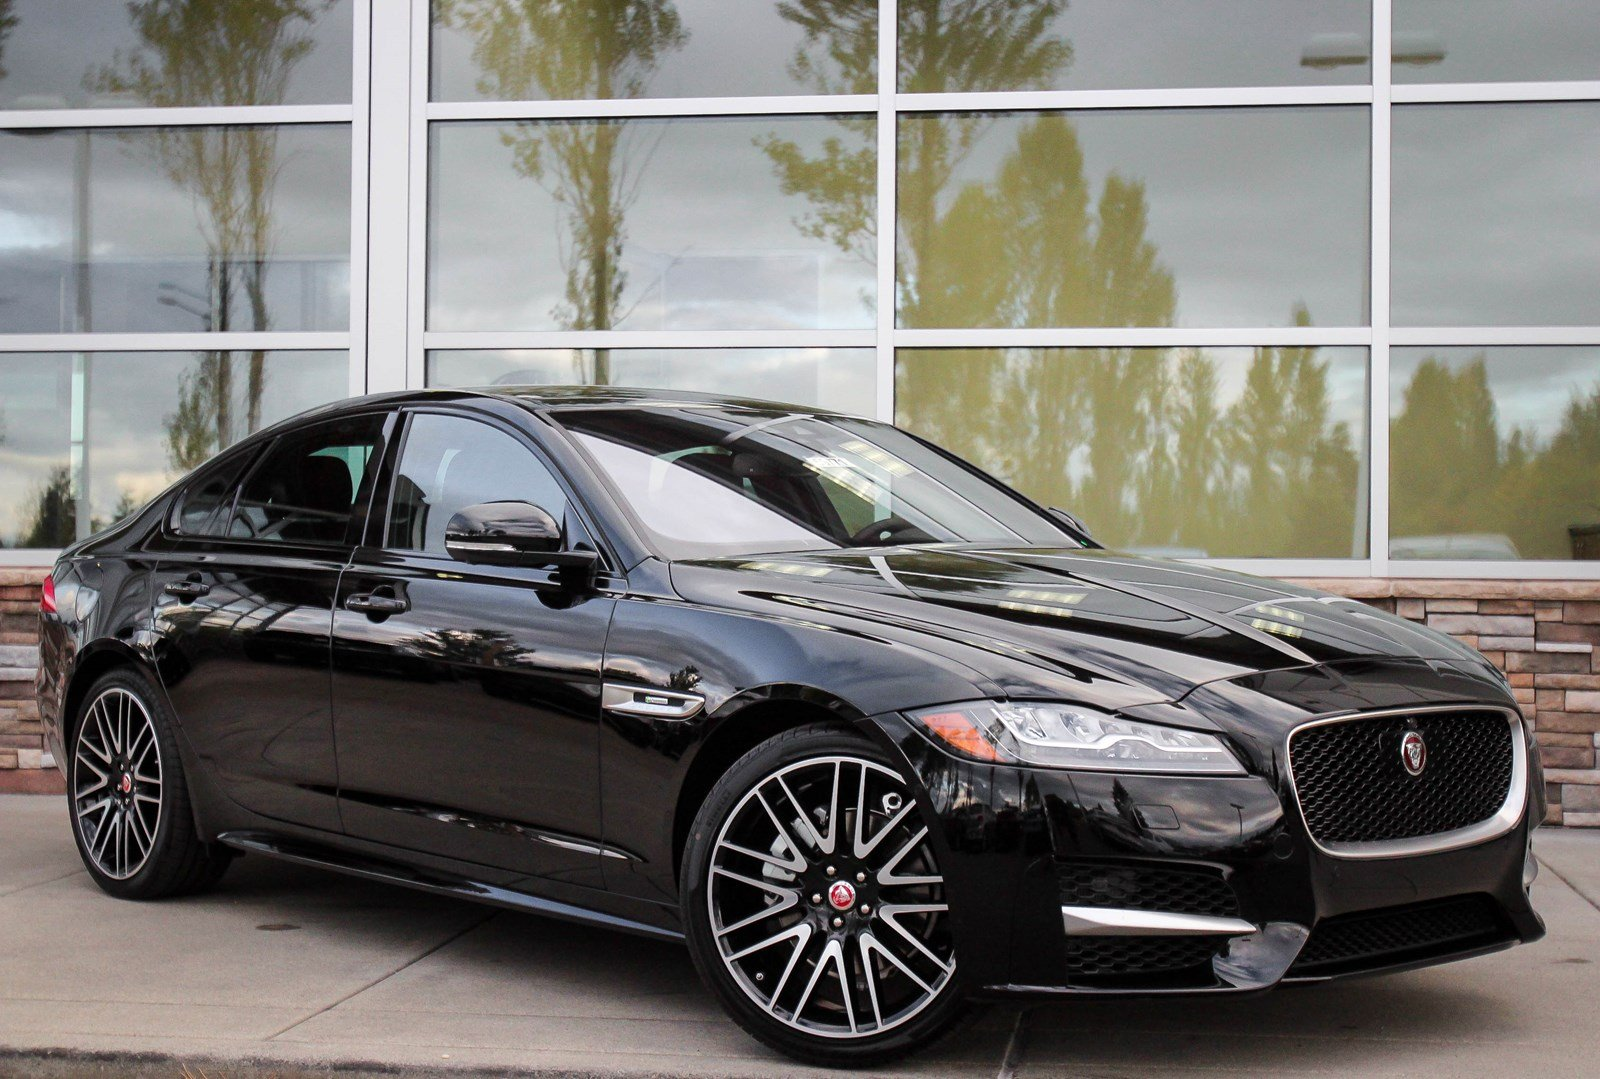 Jaguar Xf Lease Price >> New 2018 Jaguar XF 25t R-Sport 4dr Car in Bellevue #59771 | Jaguar Bellevue